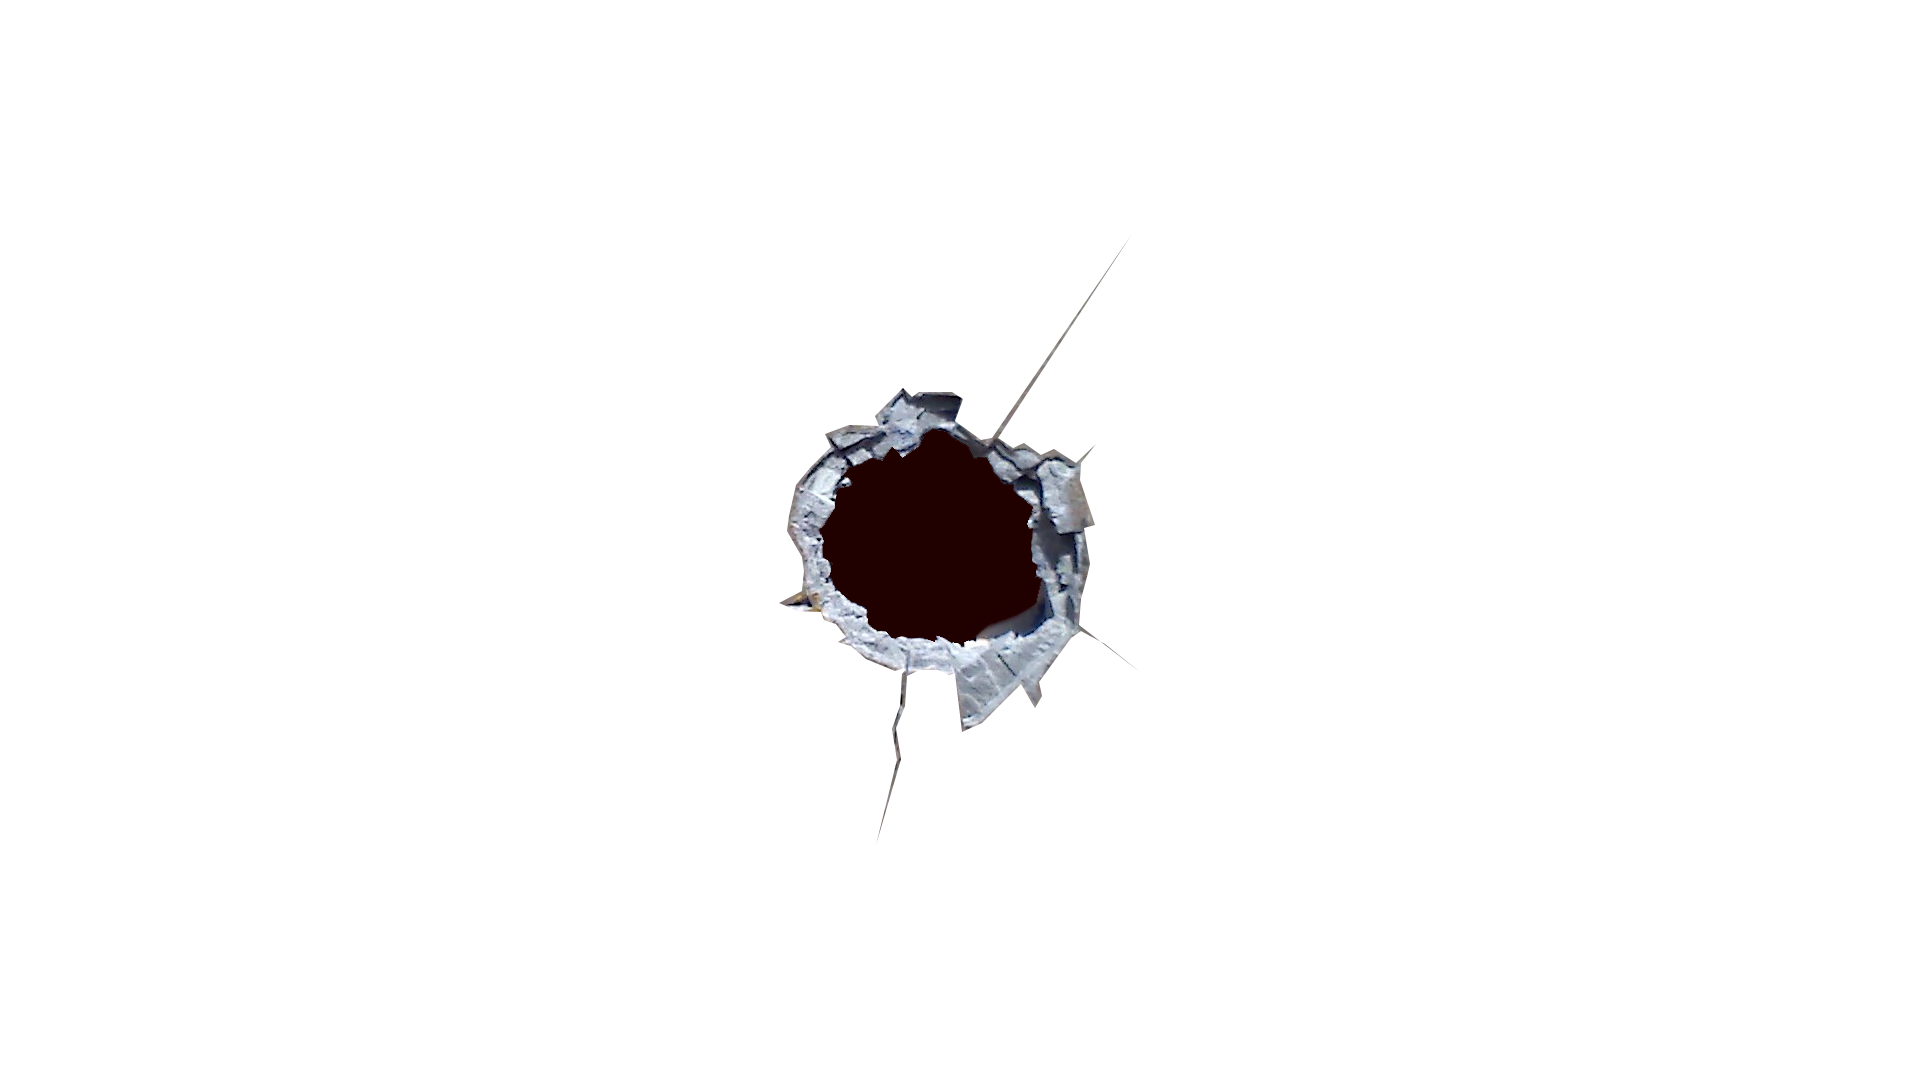 Hole in wall png. Bullet holes icon web